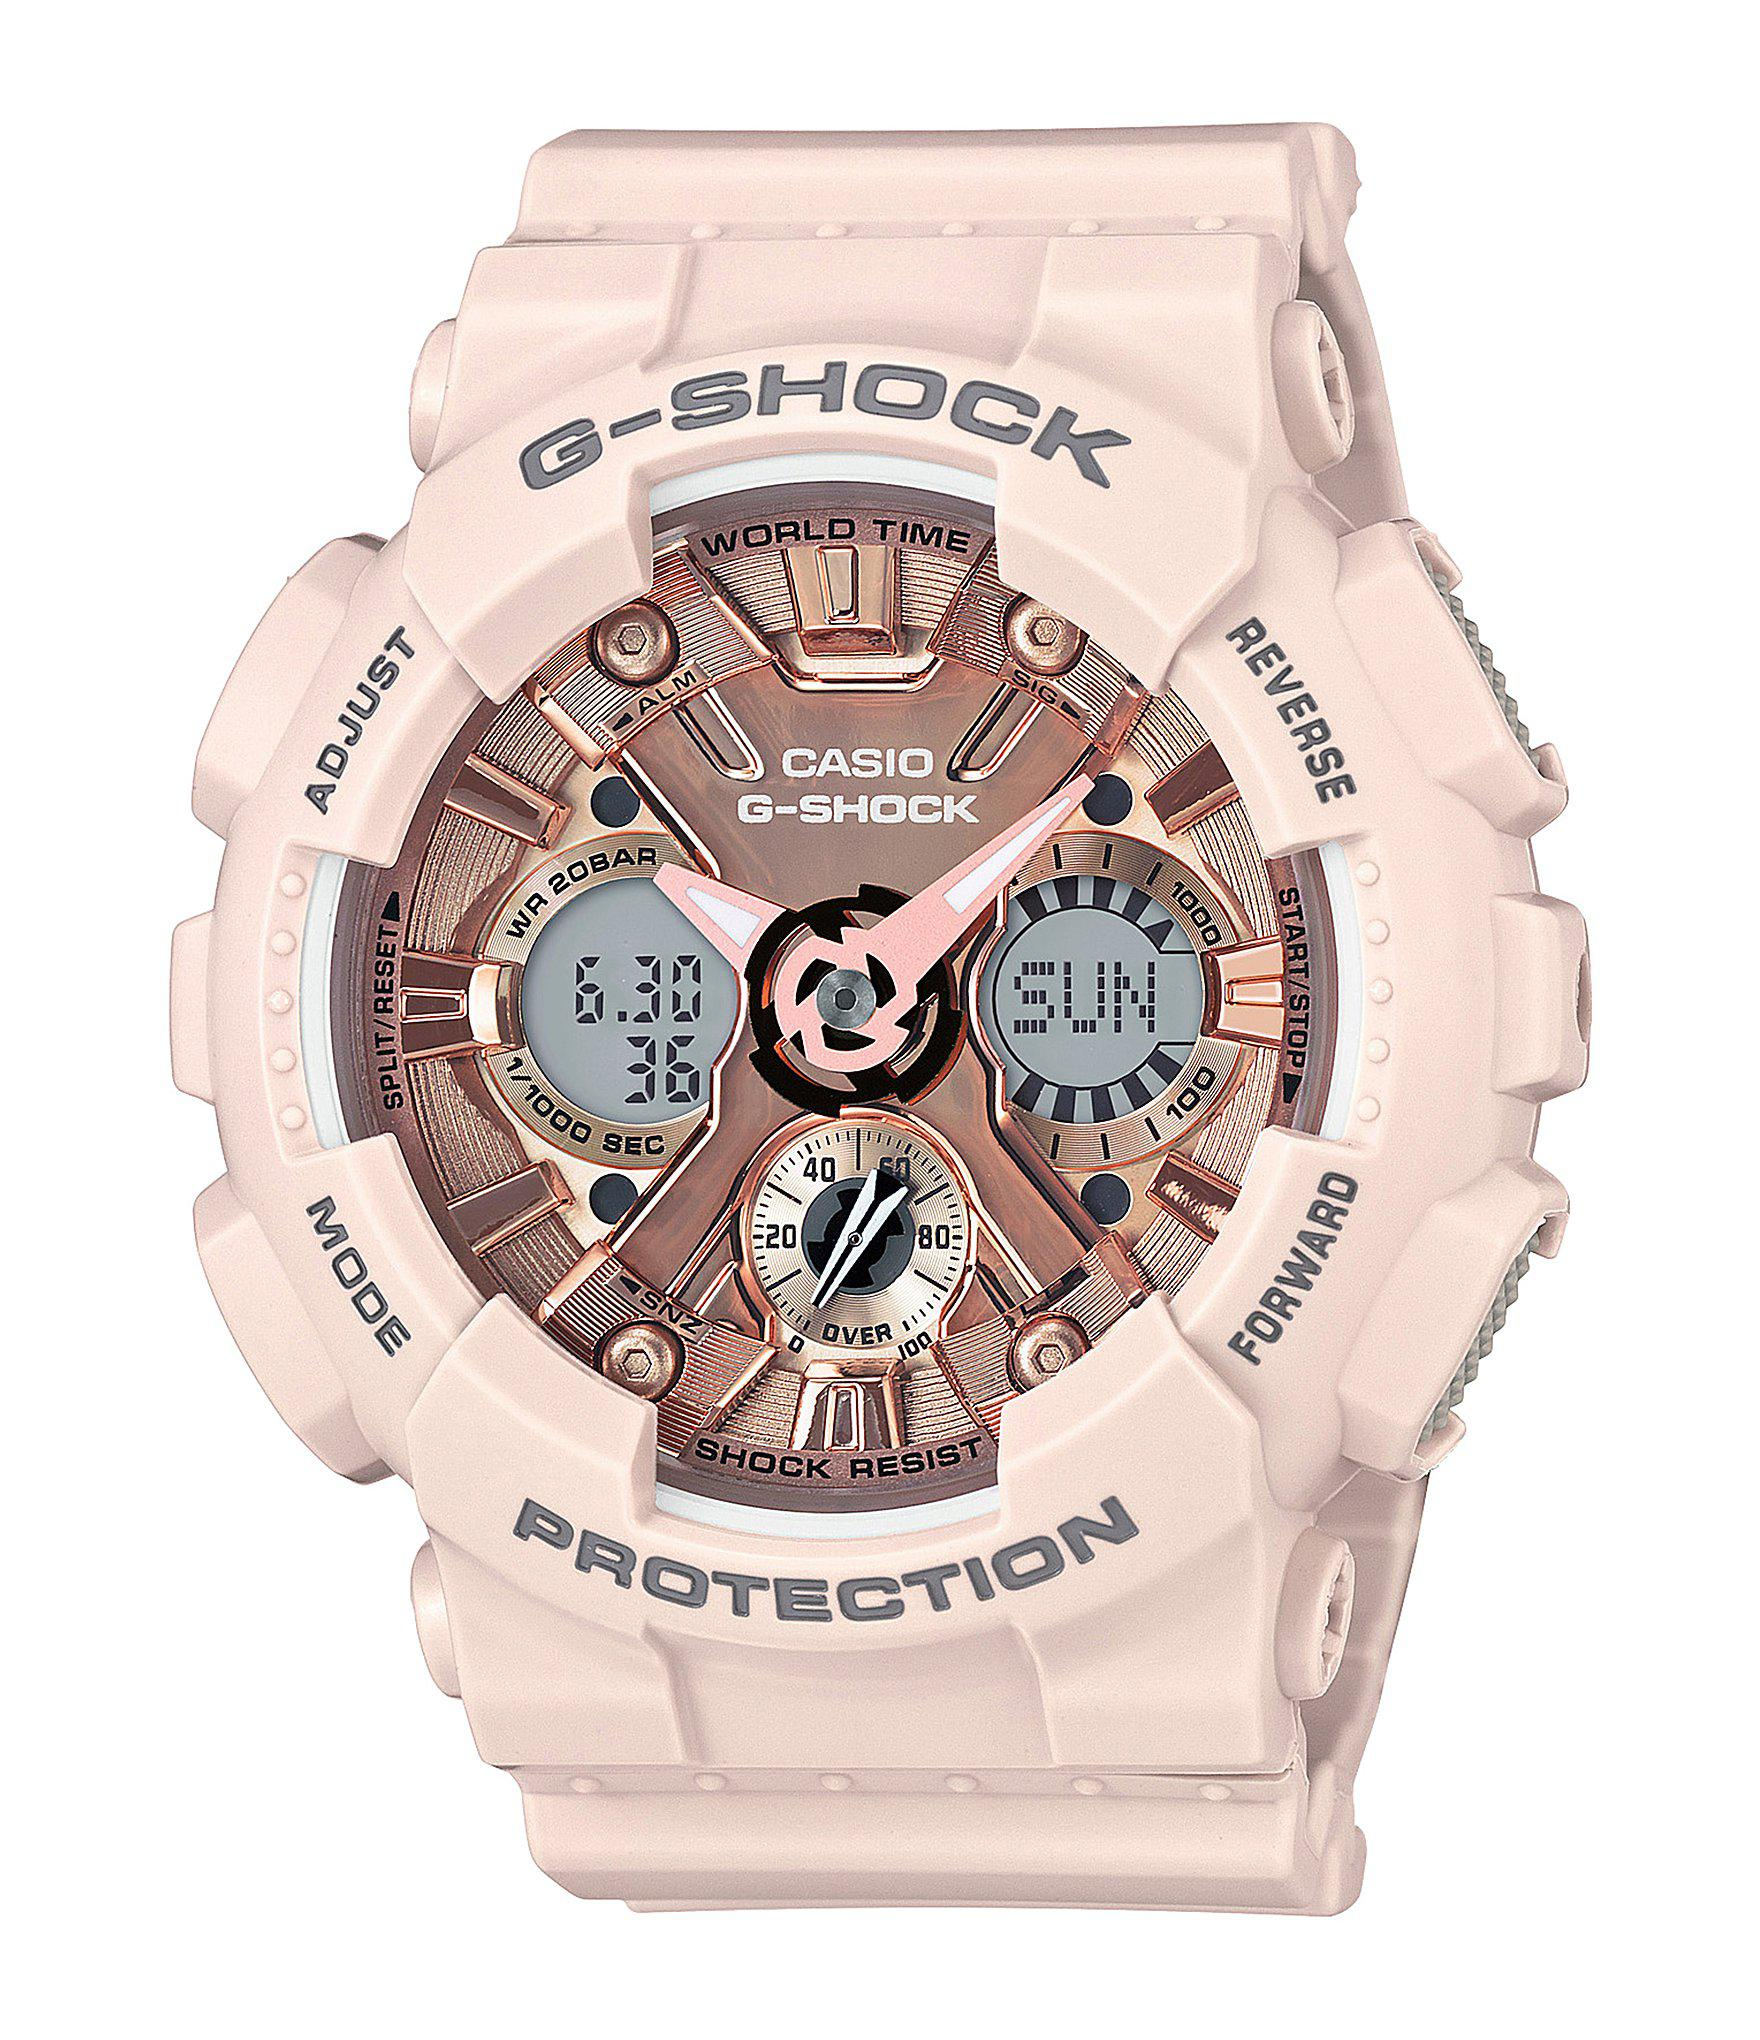 bb5e7e0db3fb Lyst - G-Shock Ana-digi Resin-strap Watch in Pink - Save 29%